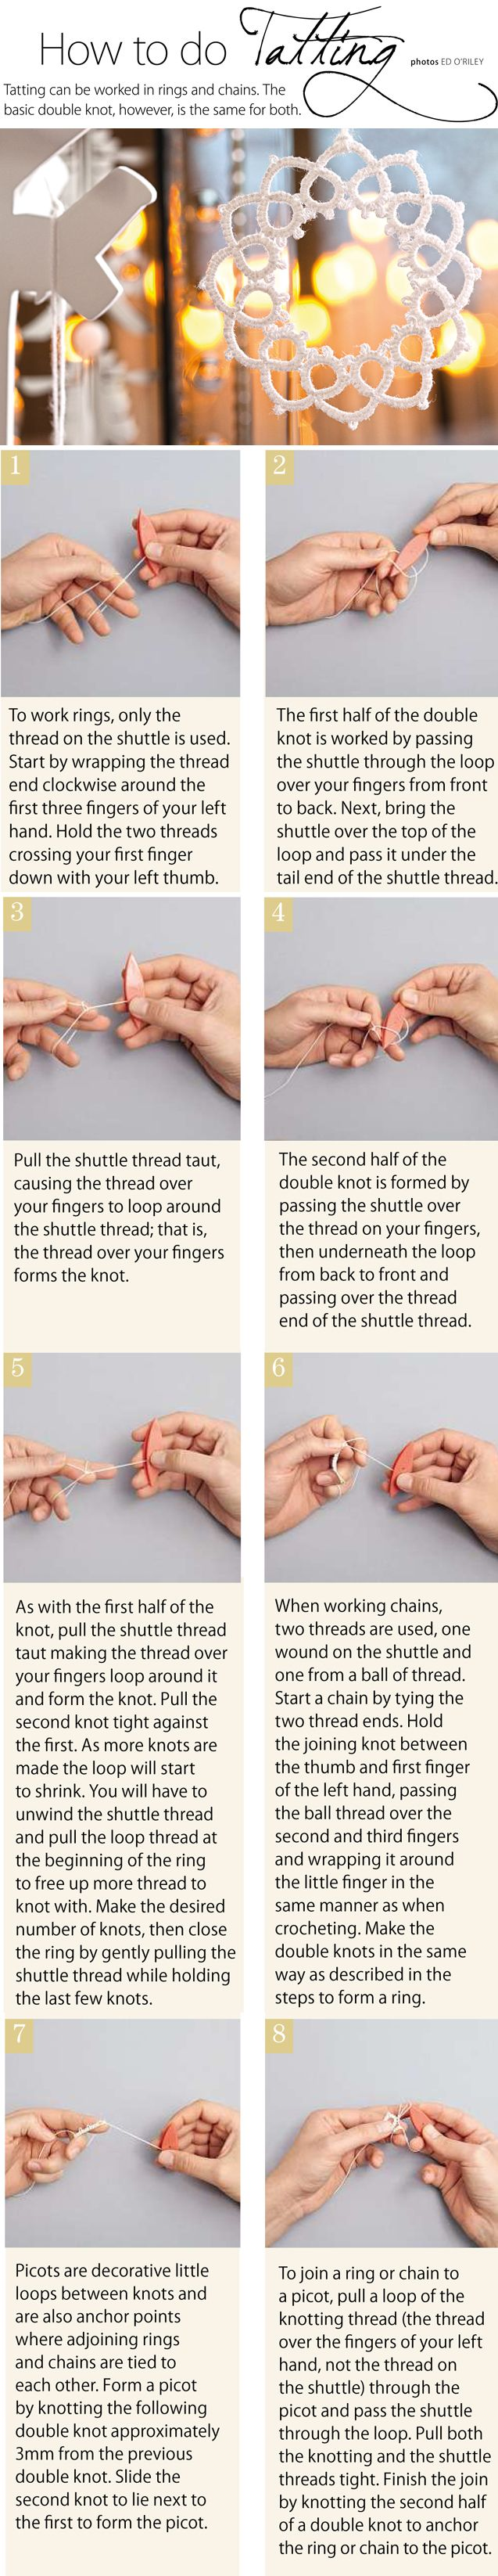 How to do tatting - shuttle tatting that is.  I know, it's on a needle tatting board.